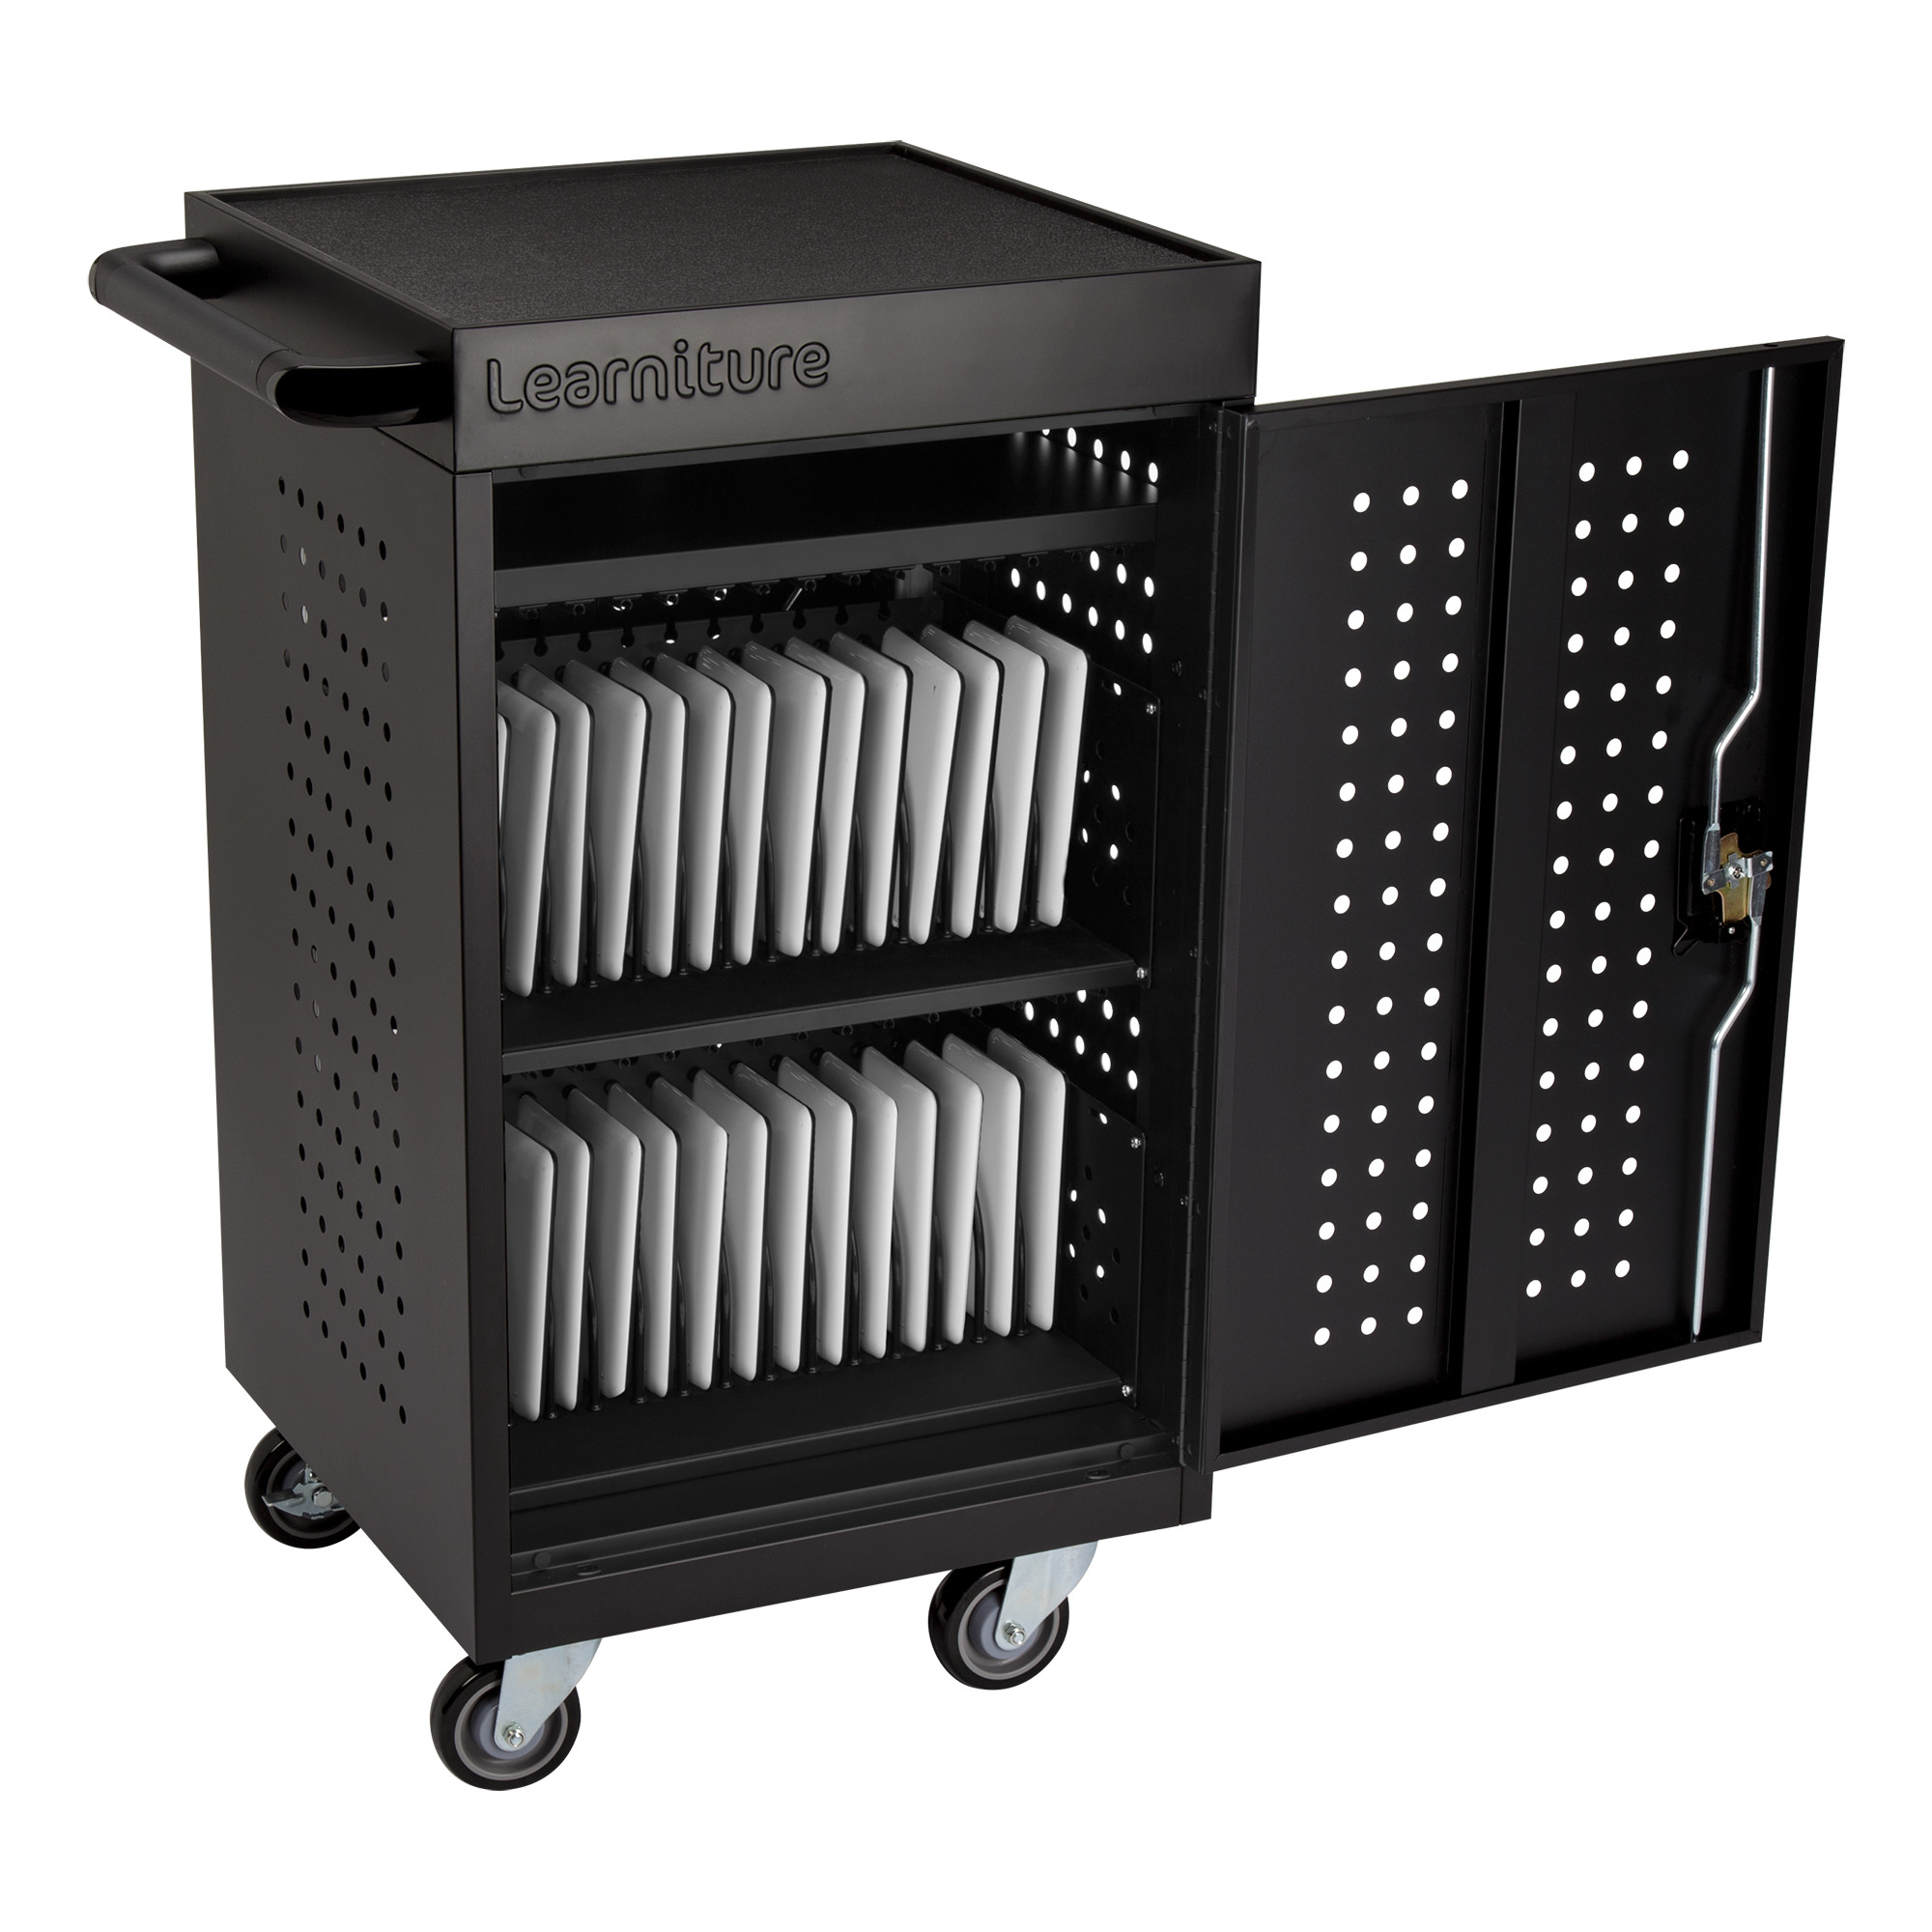 LNT GNO3008 SO_Tablets?width=265&height=265&version=v20171115 learniture structure series 30 bay tablet charging cart w  at gsmportal.co